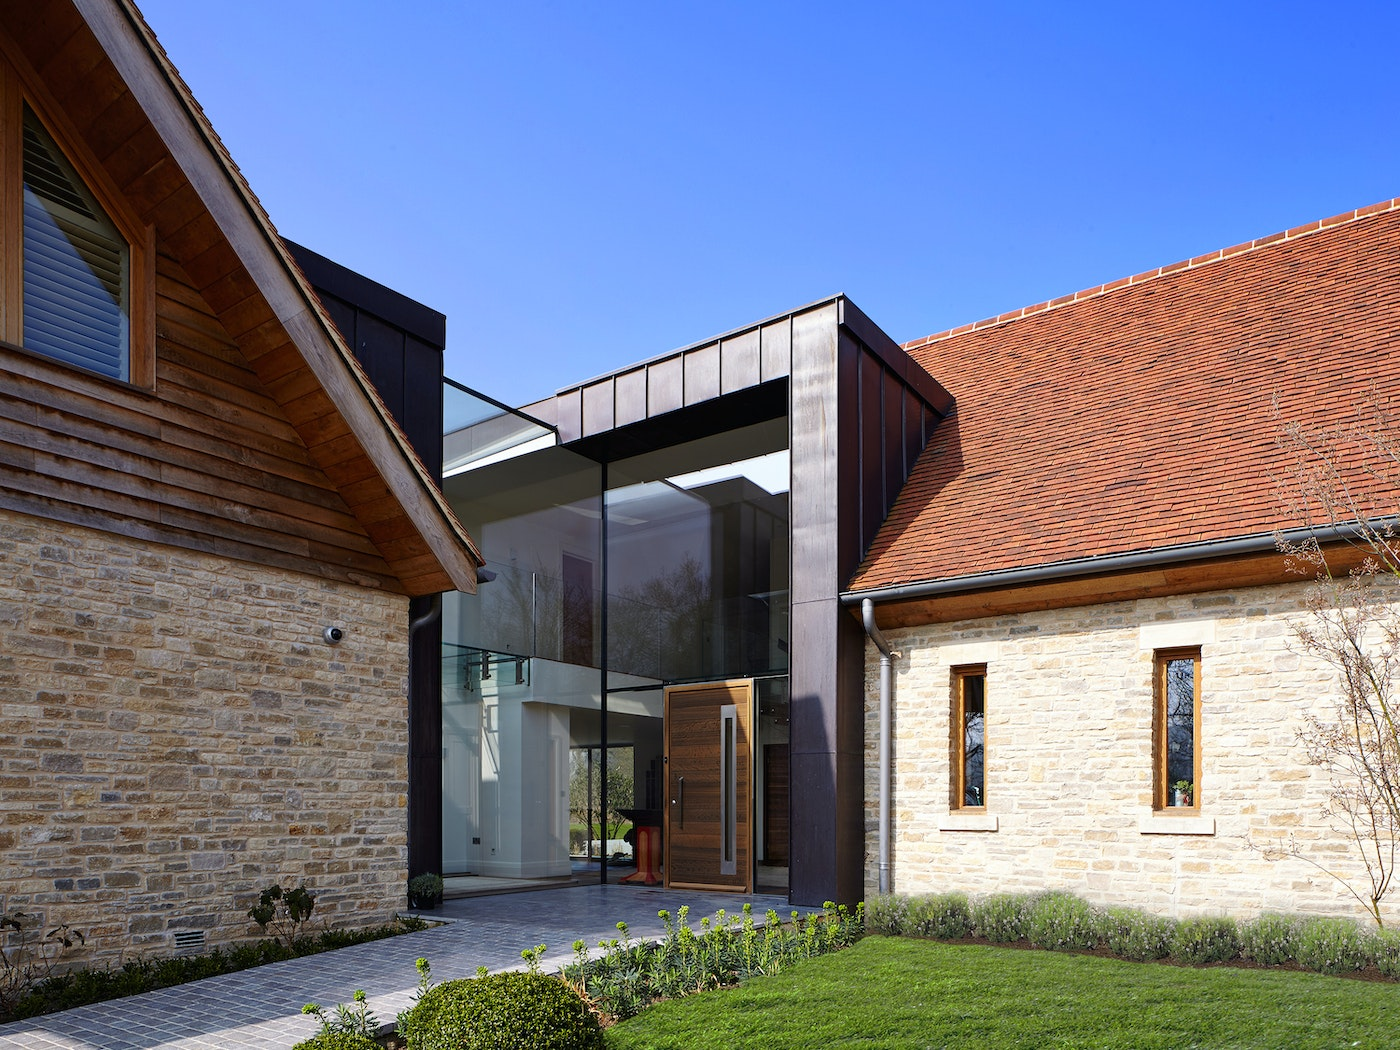 The glass of this facade dominates the entrance way but the fumed oak front door is the standout element bringing the variety of mixed building materials together